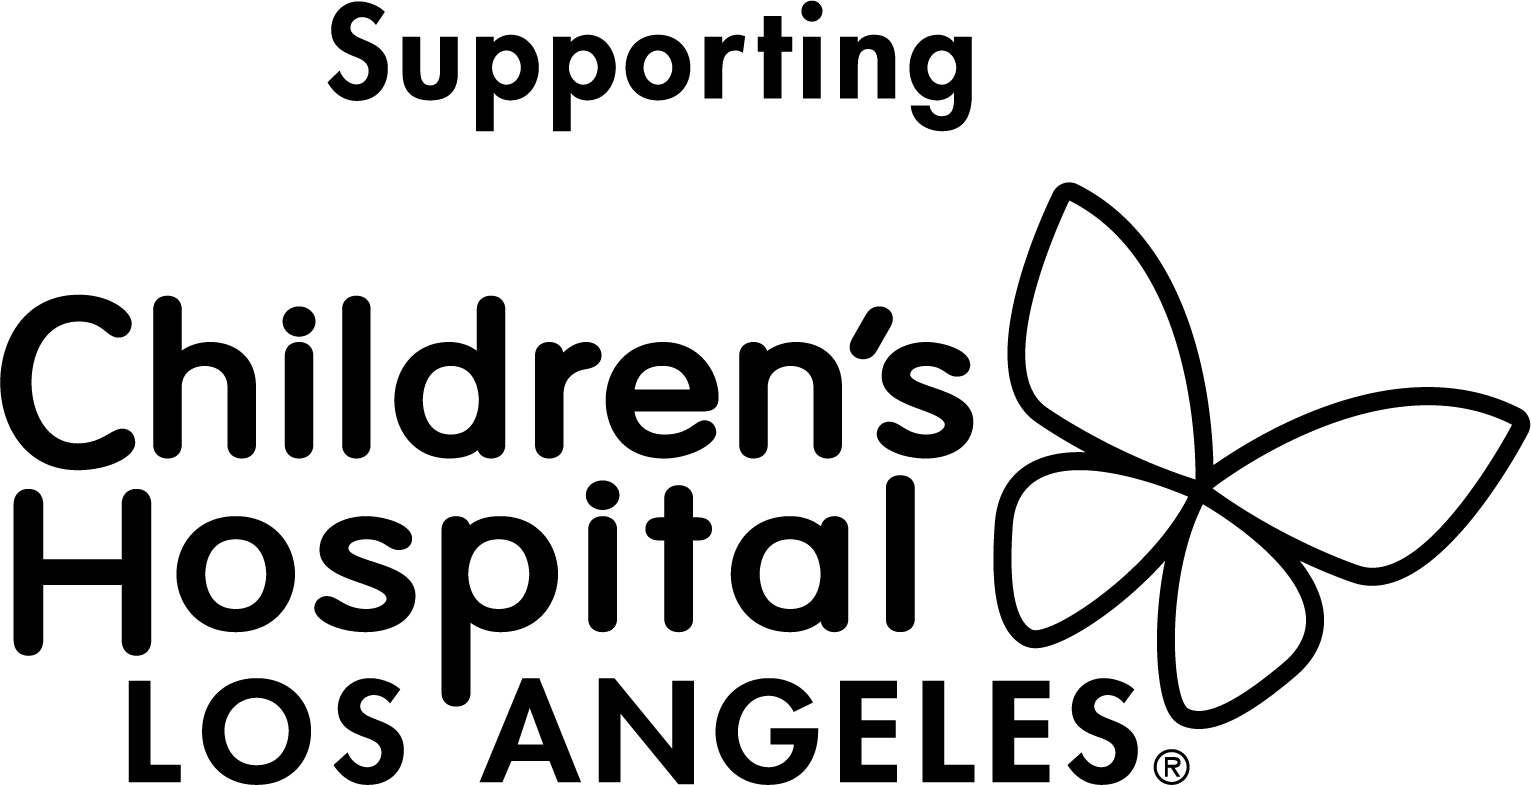 children's hospital los angeles - charitable gift ideas for anniversary and christmas 2020 - My Hand In Yours gift giving